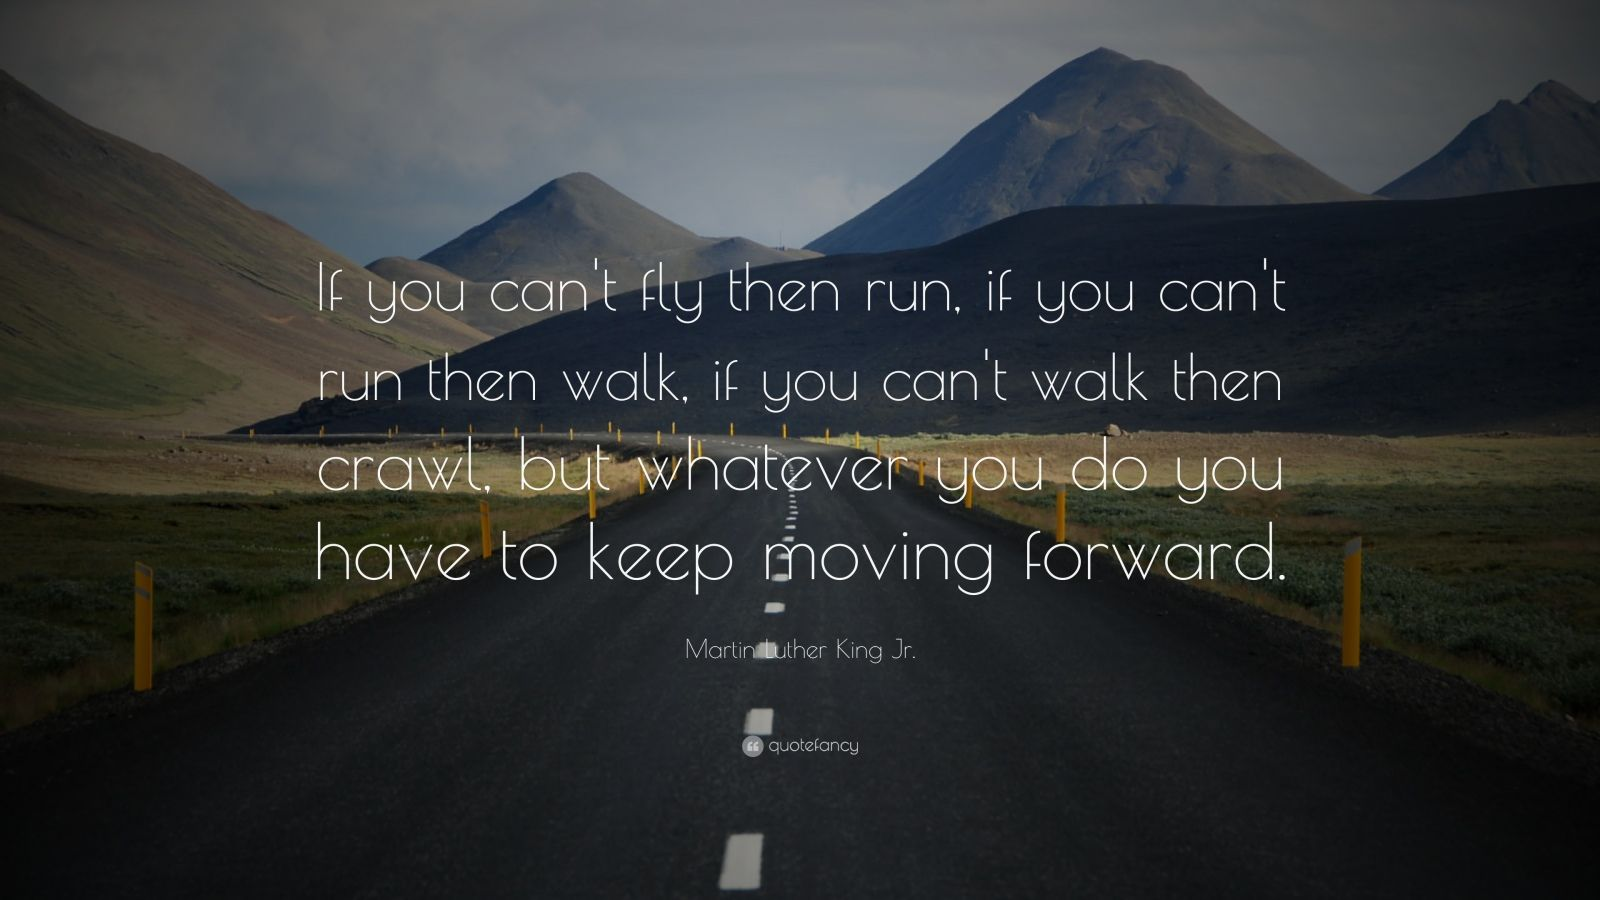 "Perseverance Quotes: ""If you can't fly then run, if you can't run then walk, if you can't walk then crawl, but whatever you do you have to keep moving forward."" — Martin Luther King Jr."